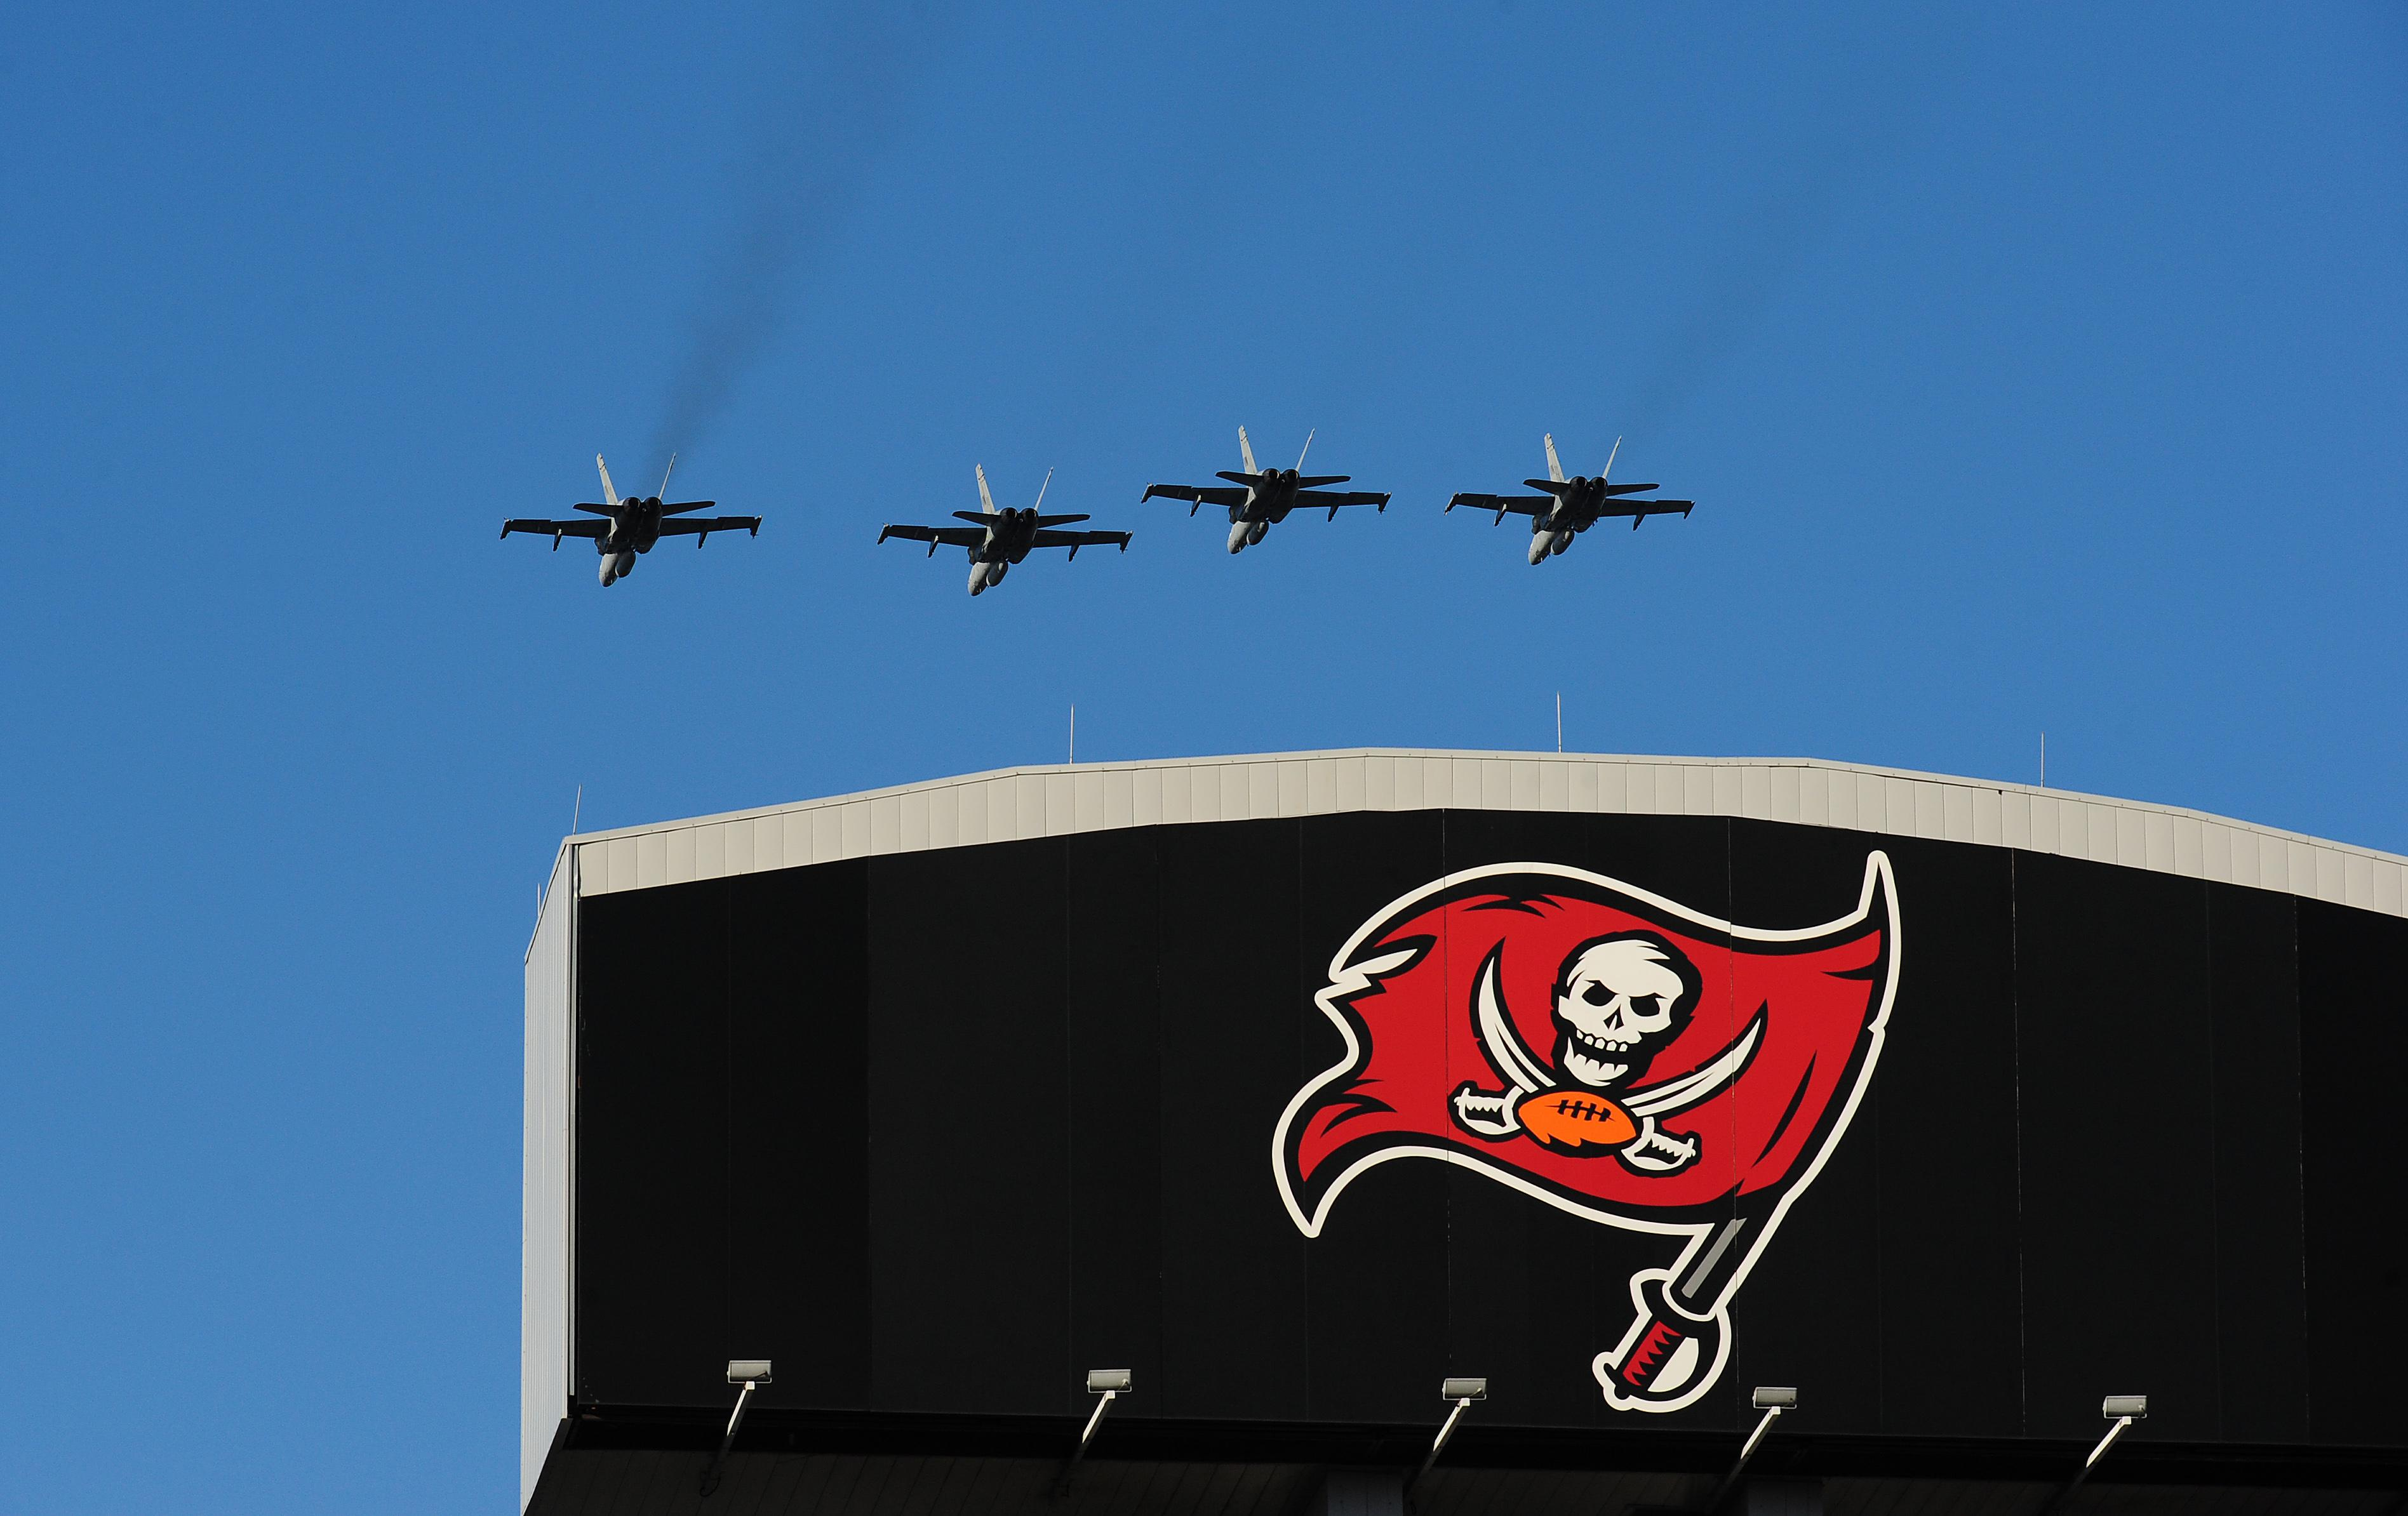 Troy Aikman and Joe Buck perfectly slam flyovers amid COVID-19 pandemic on hot mic -